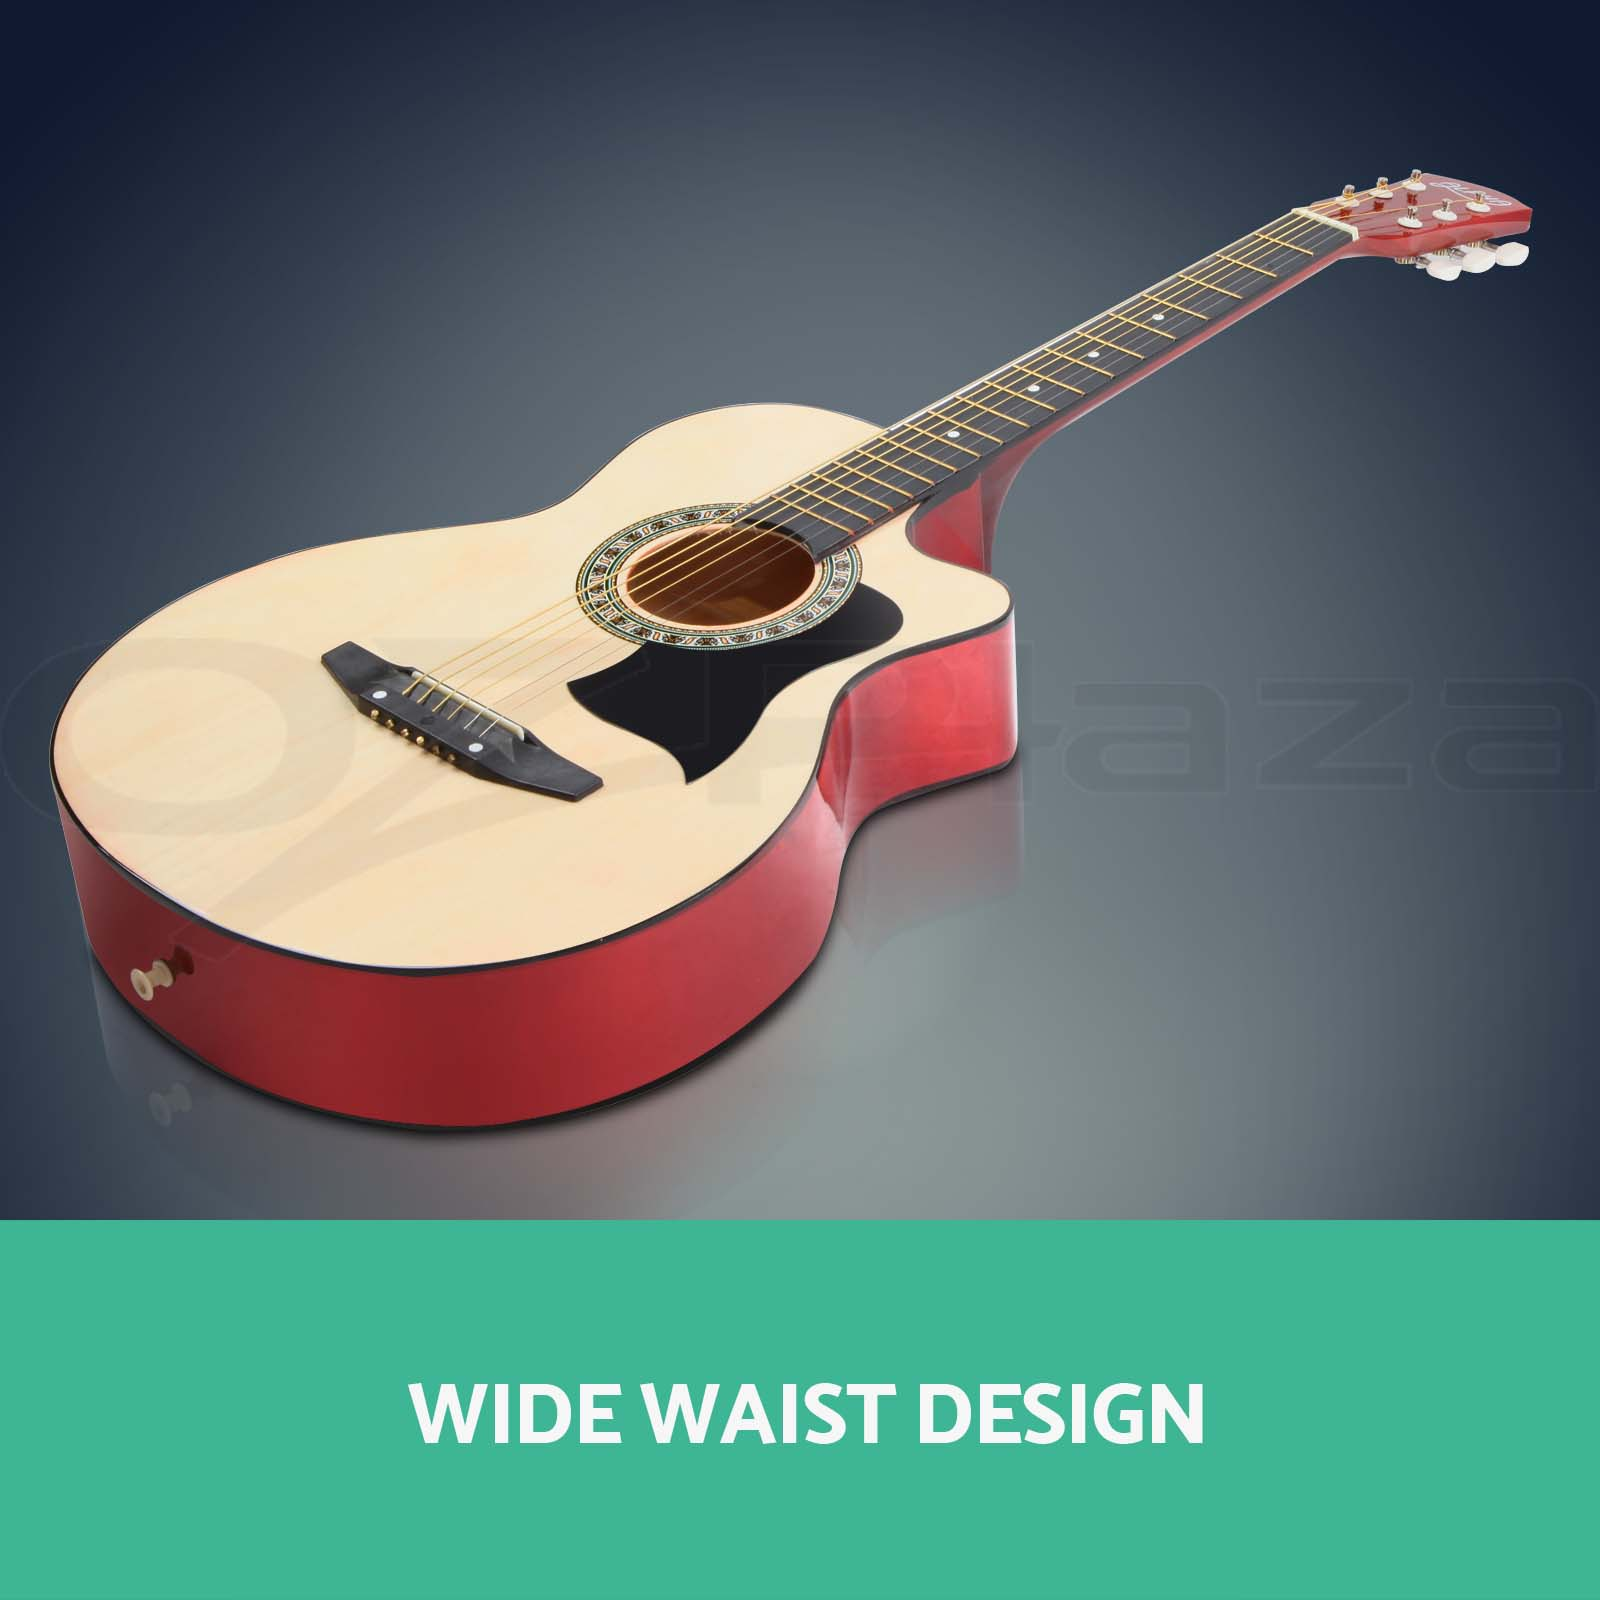 38? Inch Wooden Folk Acoustic Guitar Classical String Capo Bag Stand Tuner Strap eBay